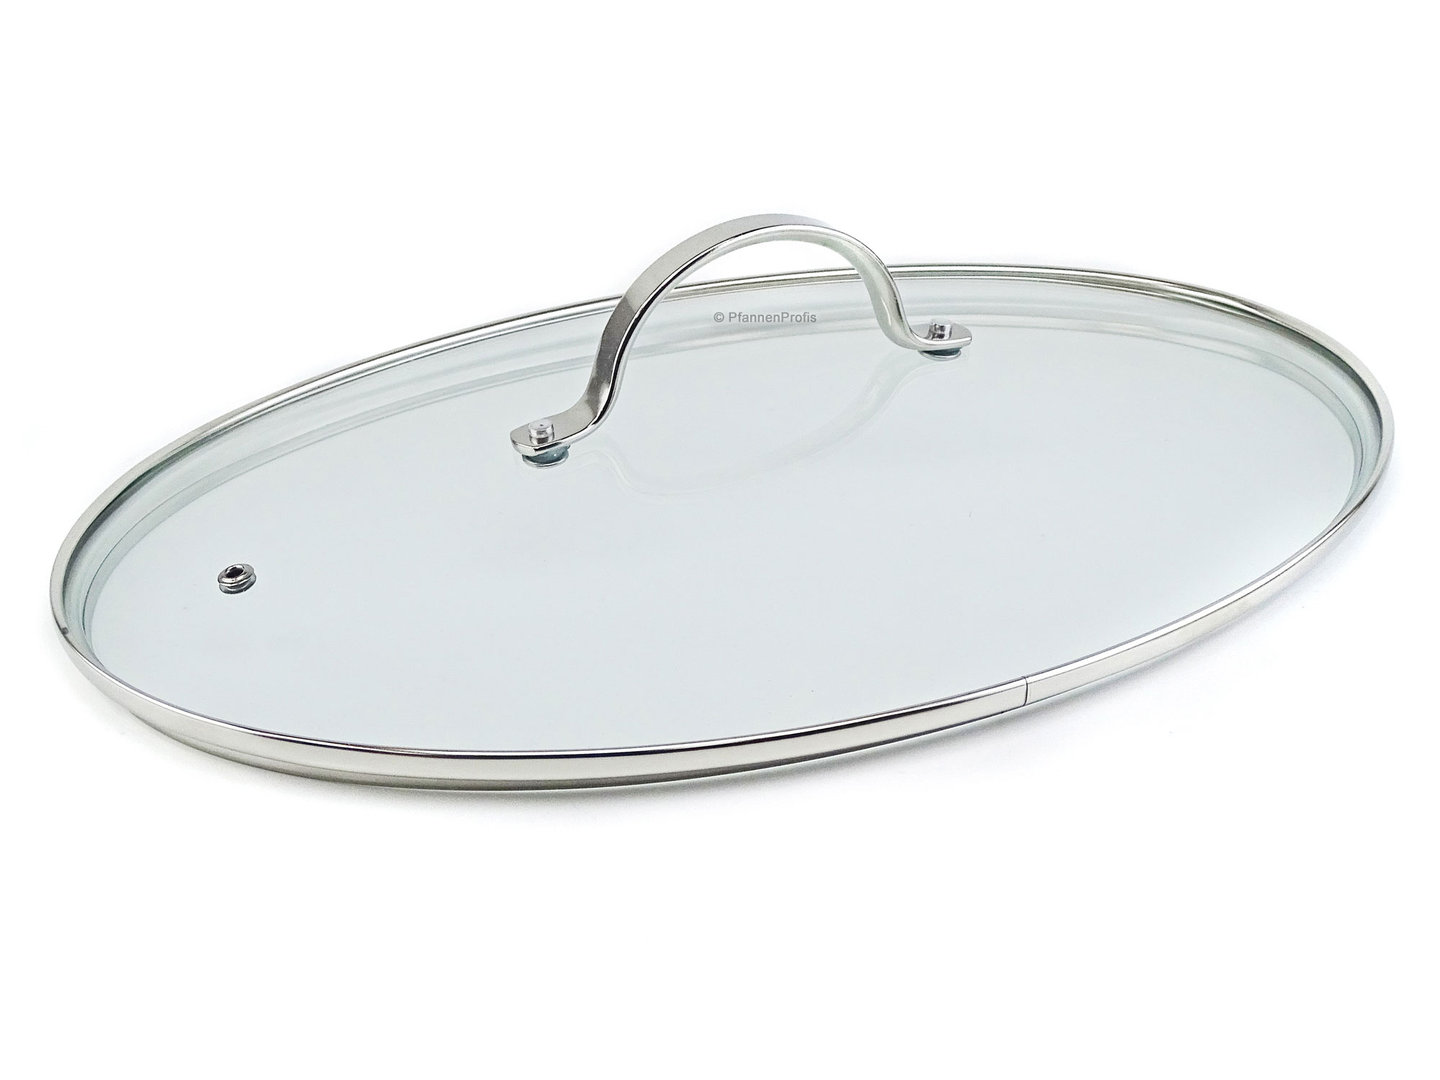 BEKA glass lid for BEKA fishpan (13947384) 37.5 x 25 cm ovenproof up to 180°C